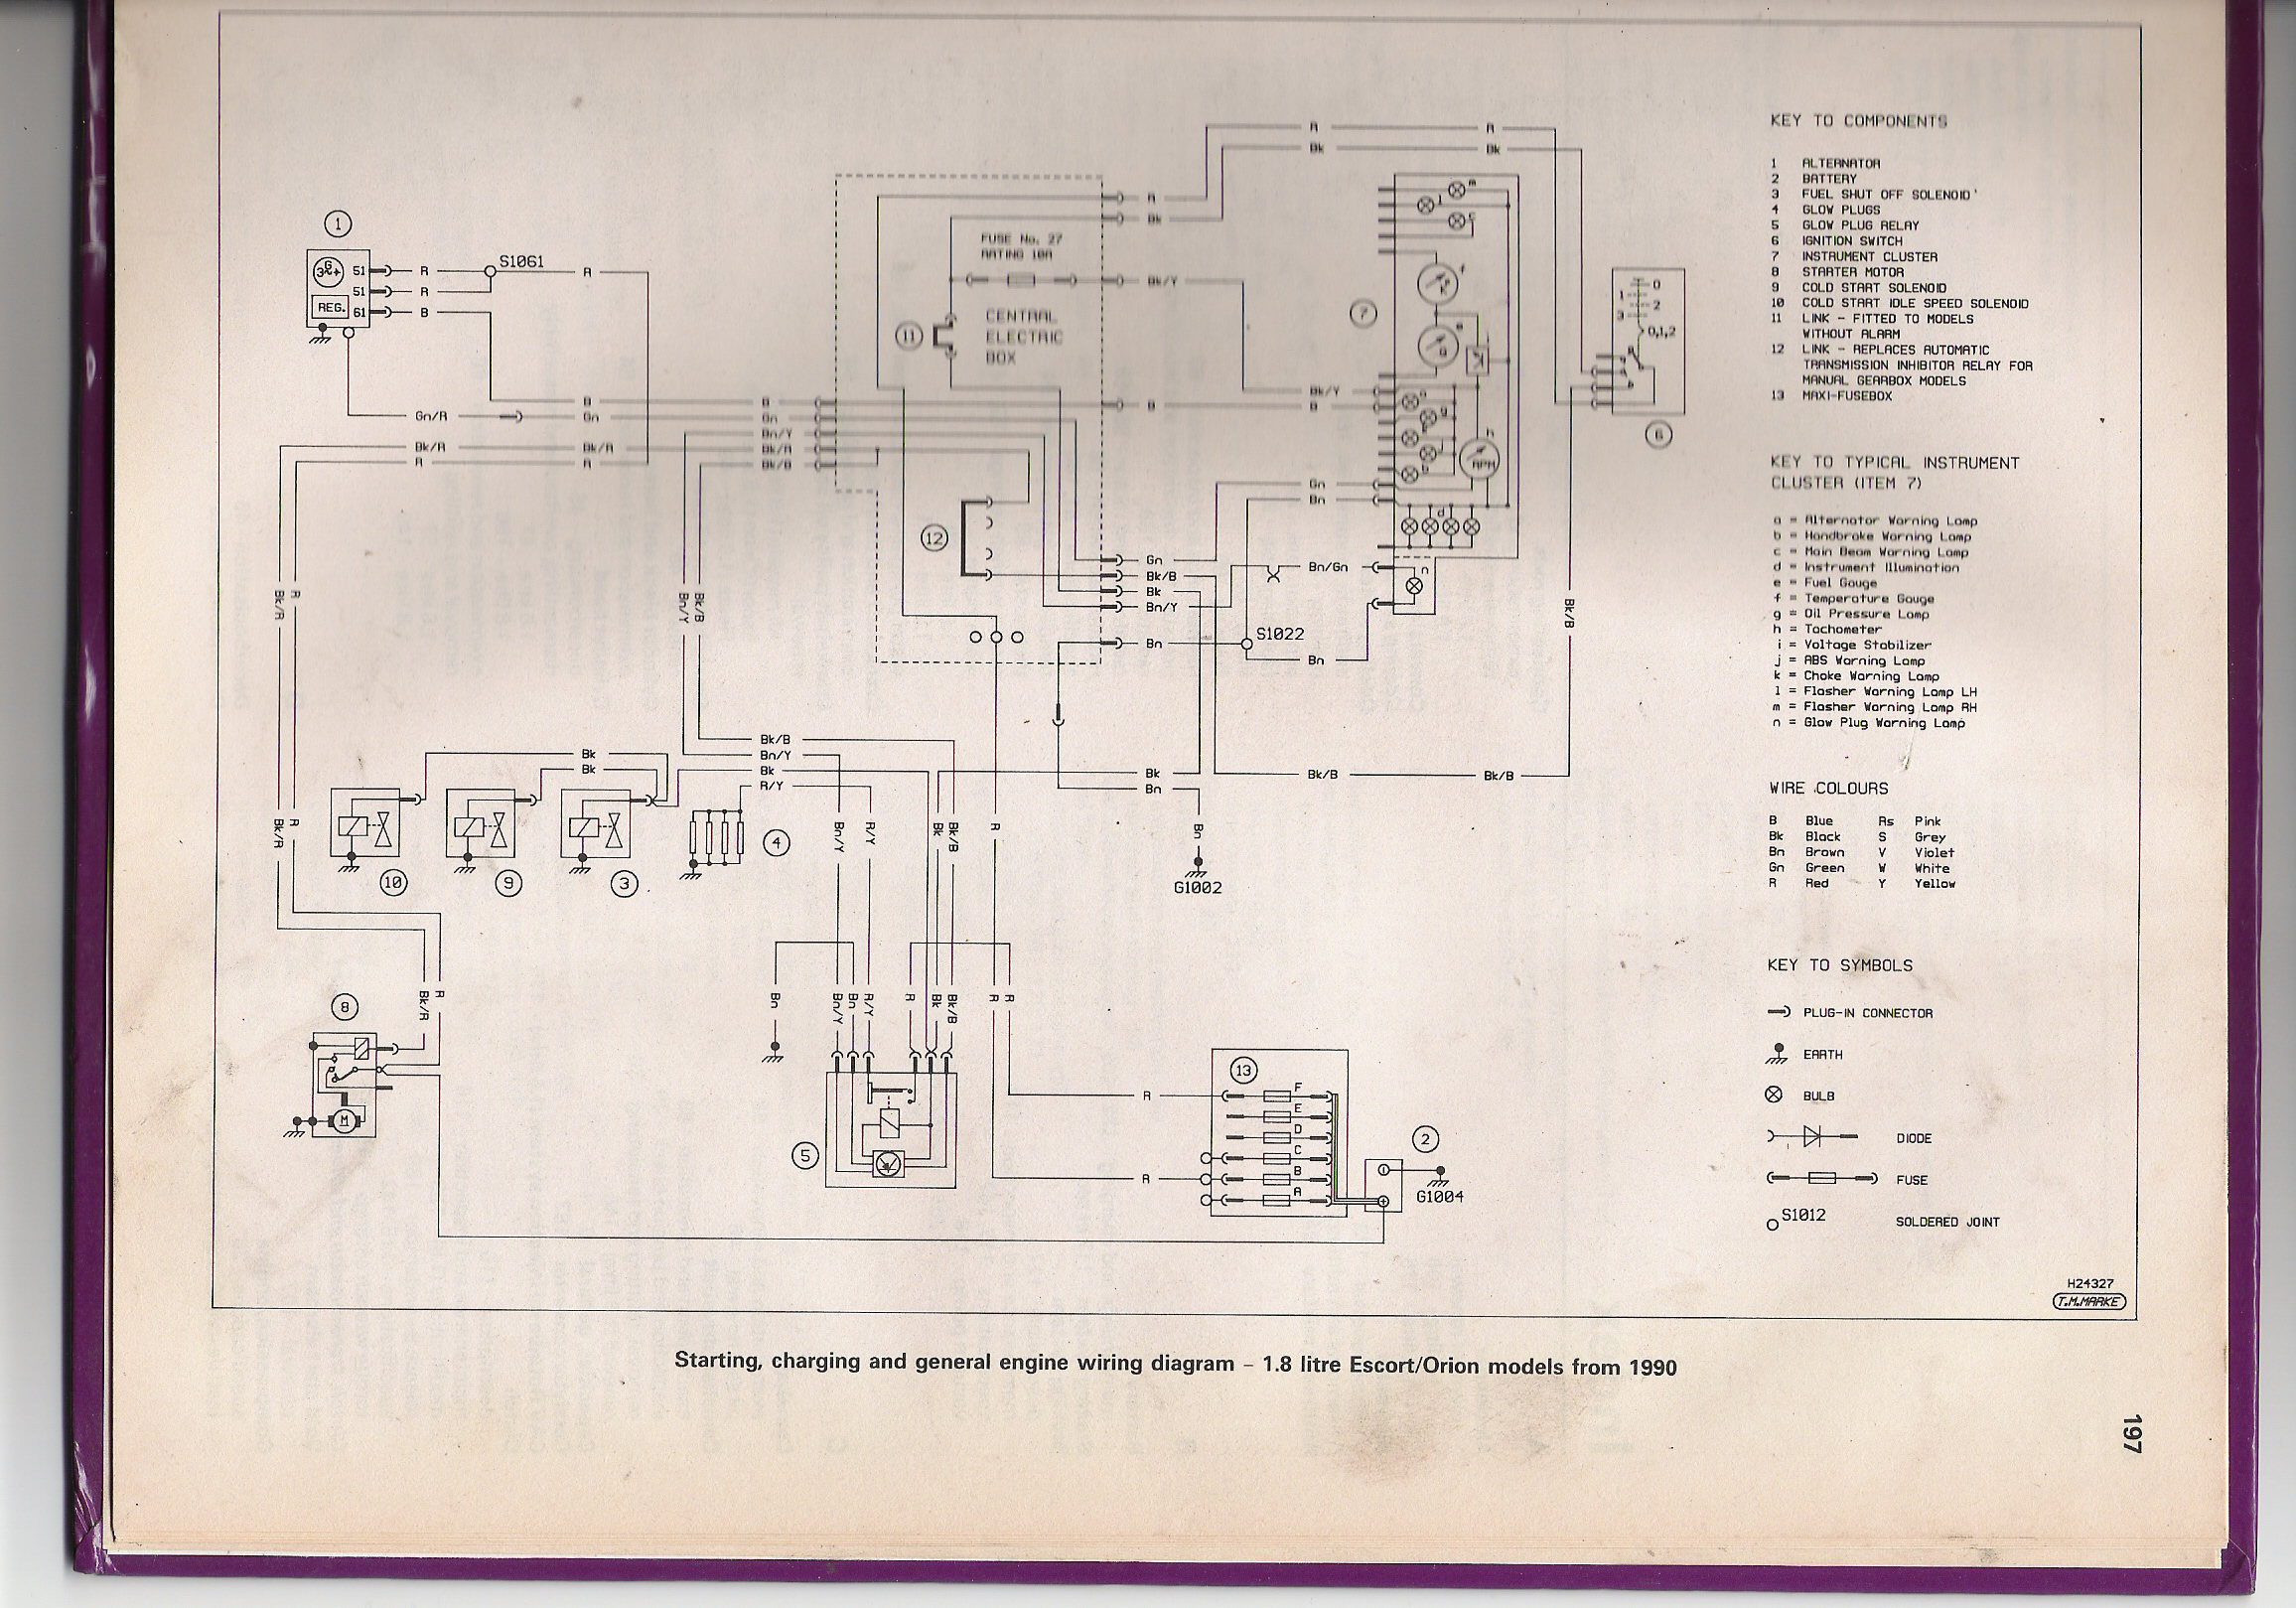 fordwiringdl mk4 wiring diagram wiring diagram for mk4 jetta power seats escort mk1 wiring diagram at crackthecode.co